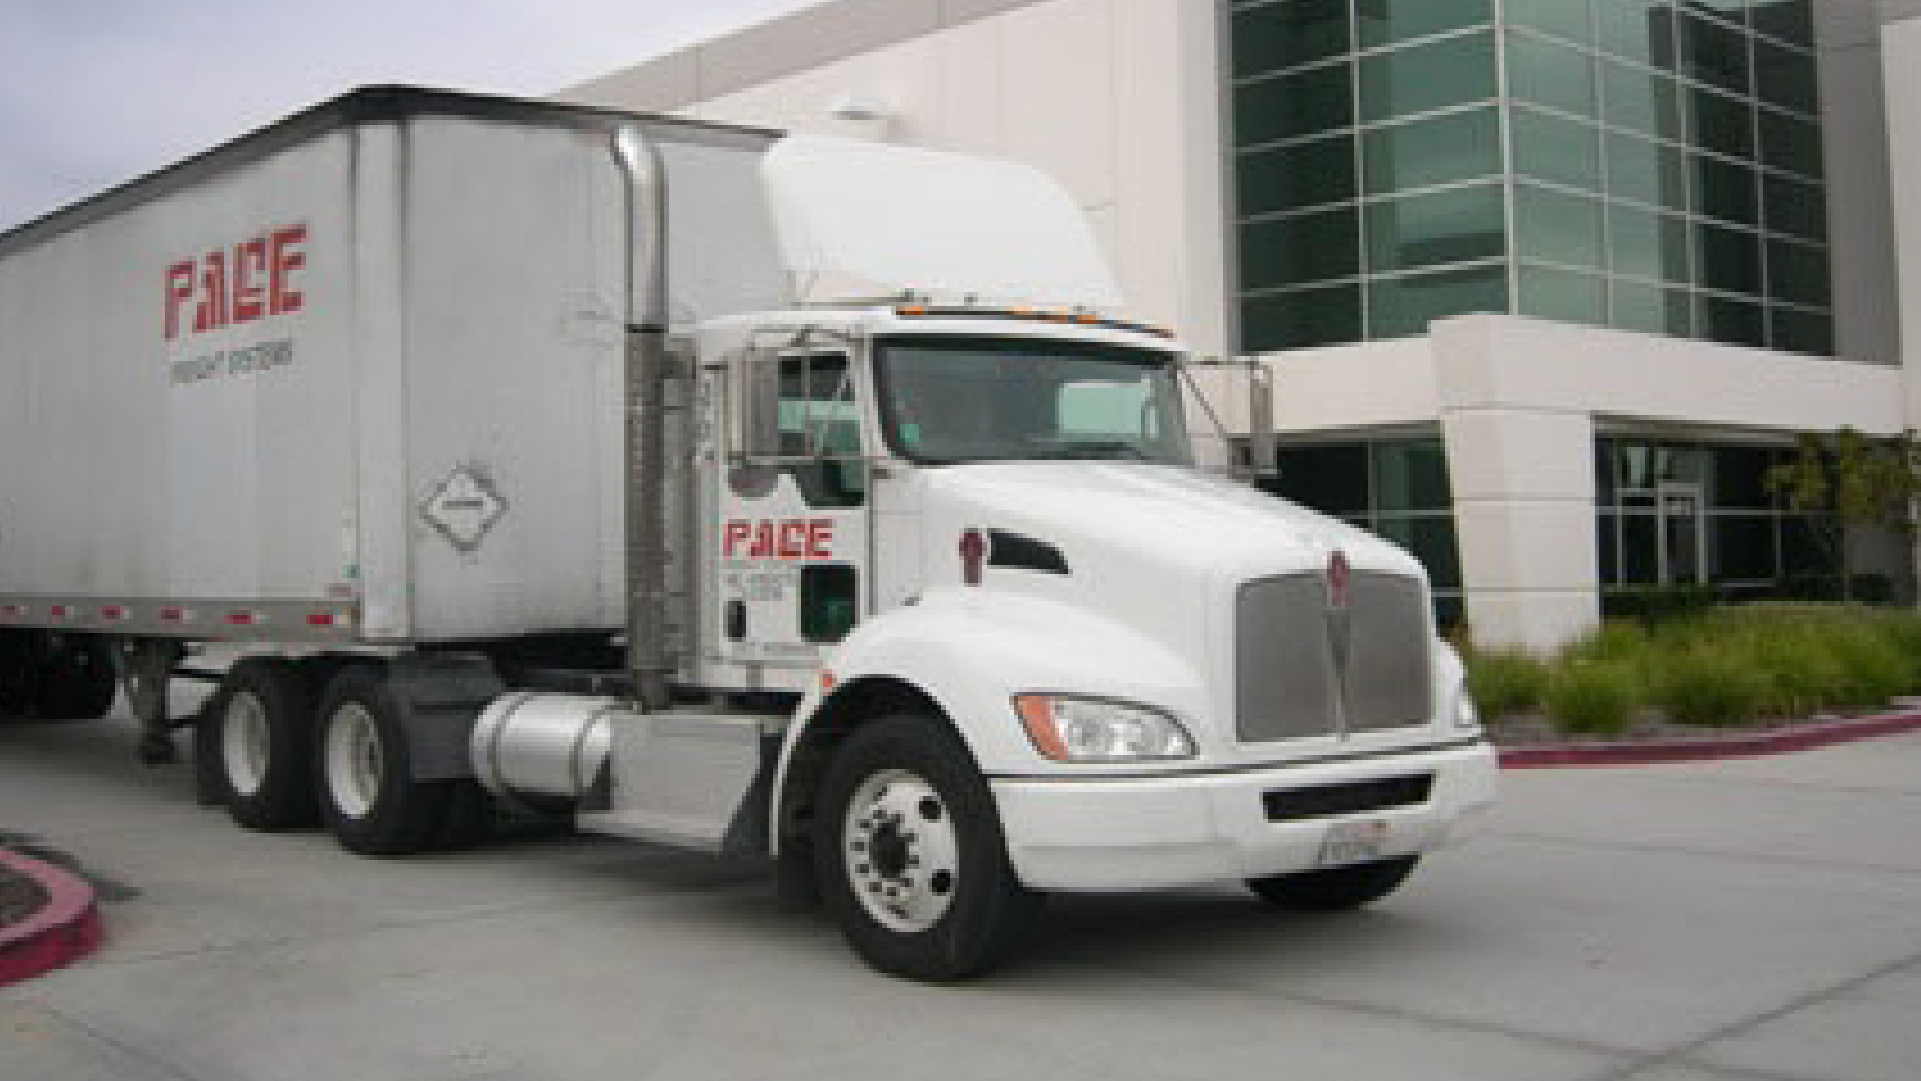 PaceFreight_PayCargo_Vendor_FEATURED IMAGE